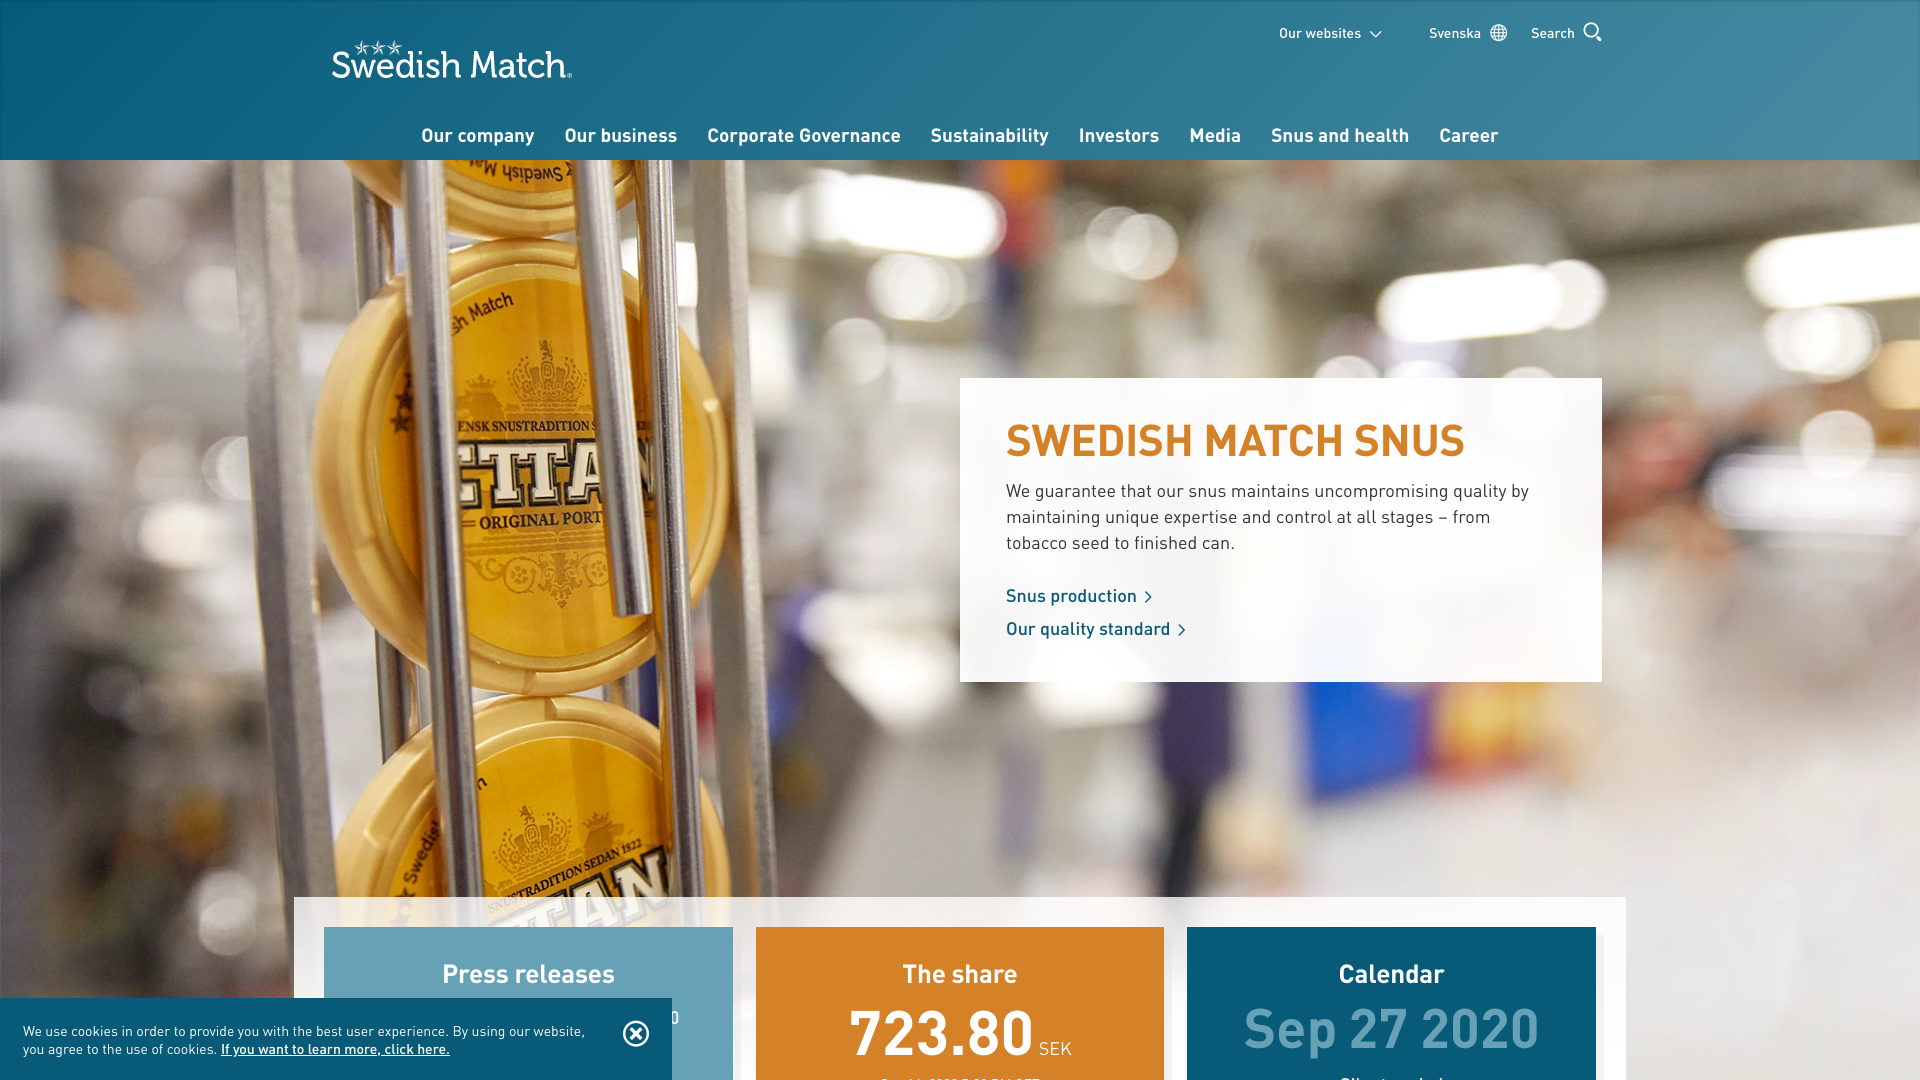 Swedish Match - manufactures, and sells quality products in the areas snus, moist snuff, nicotine pouches, chewing tobacco, cigars, and lights